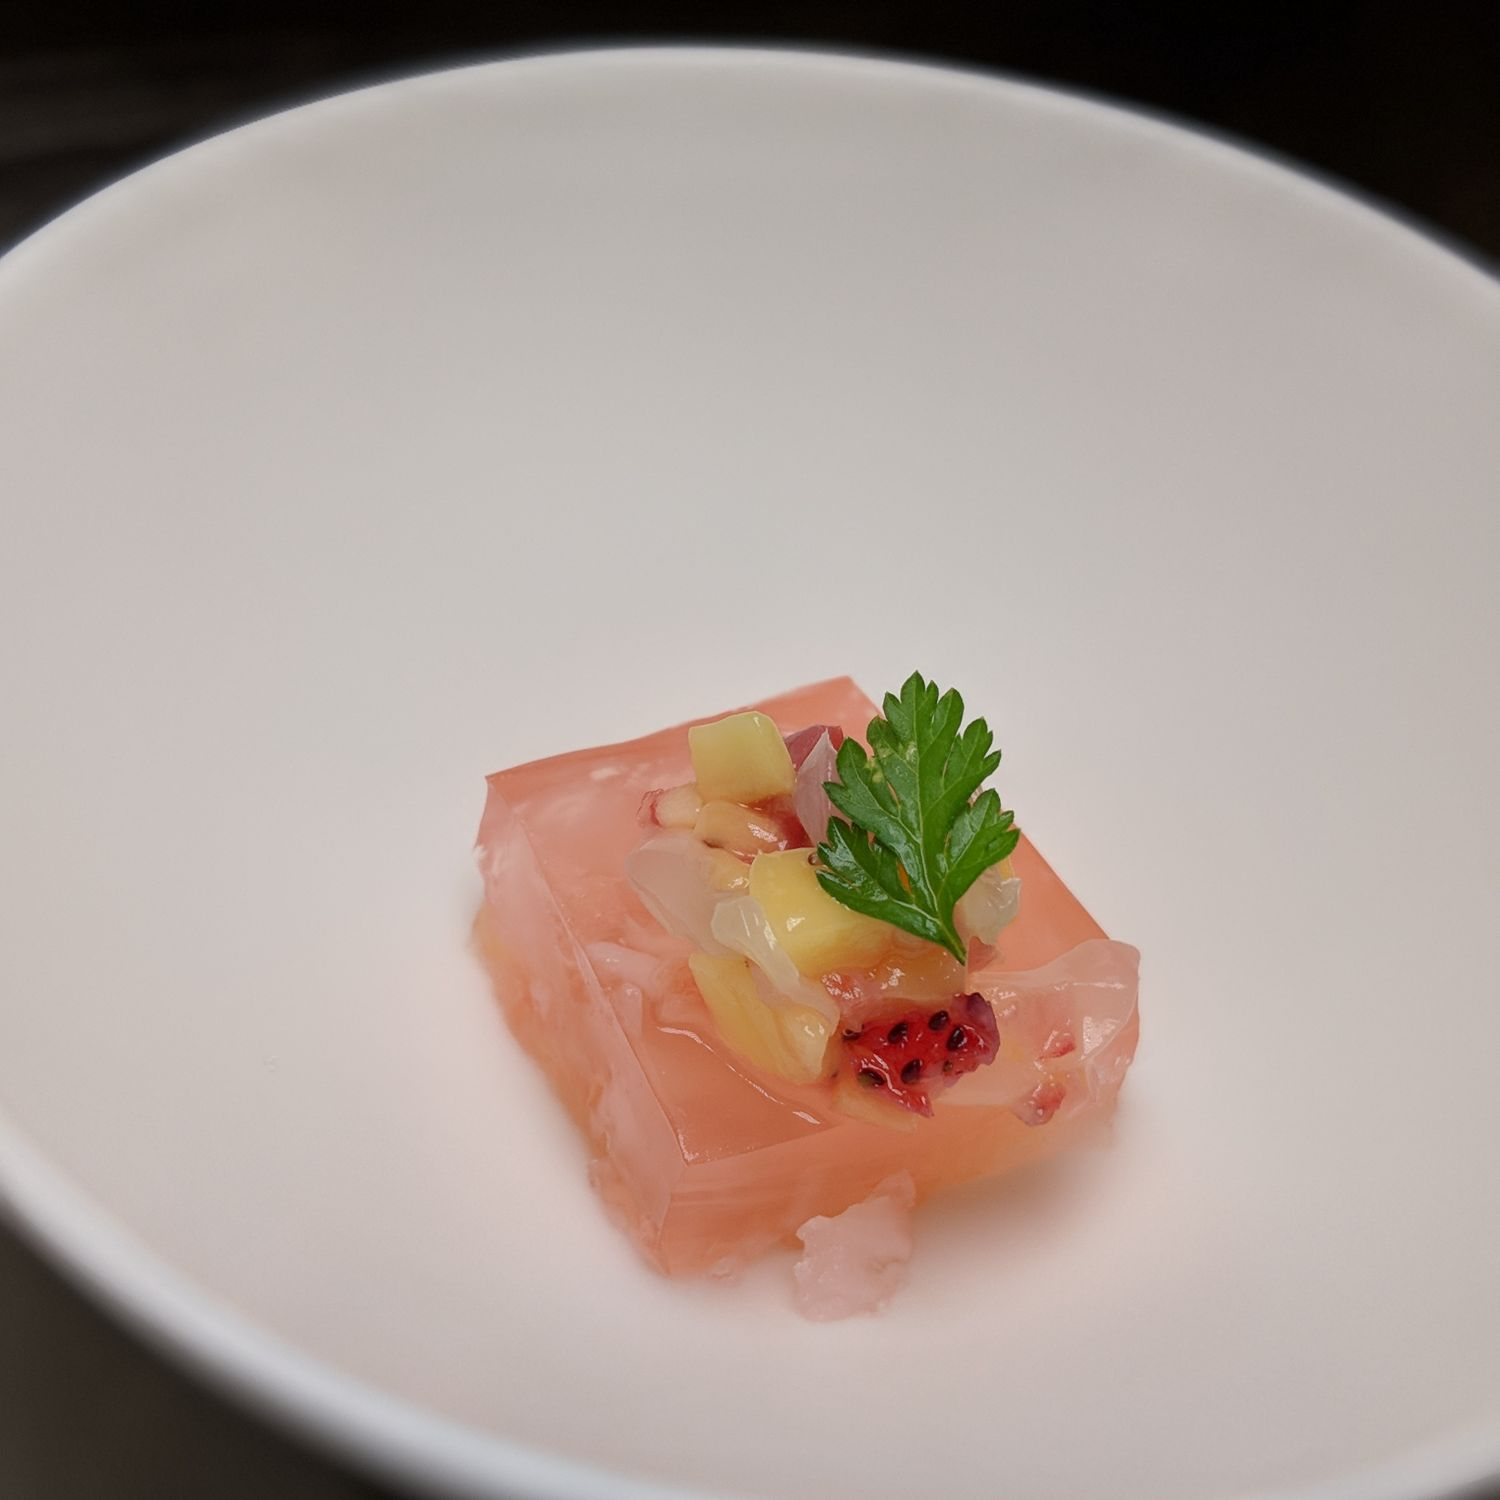 Four Seasons Hotel Singapore Jiang-Nan Chun Amuse Bouche